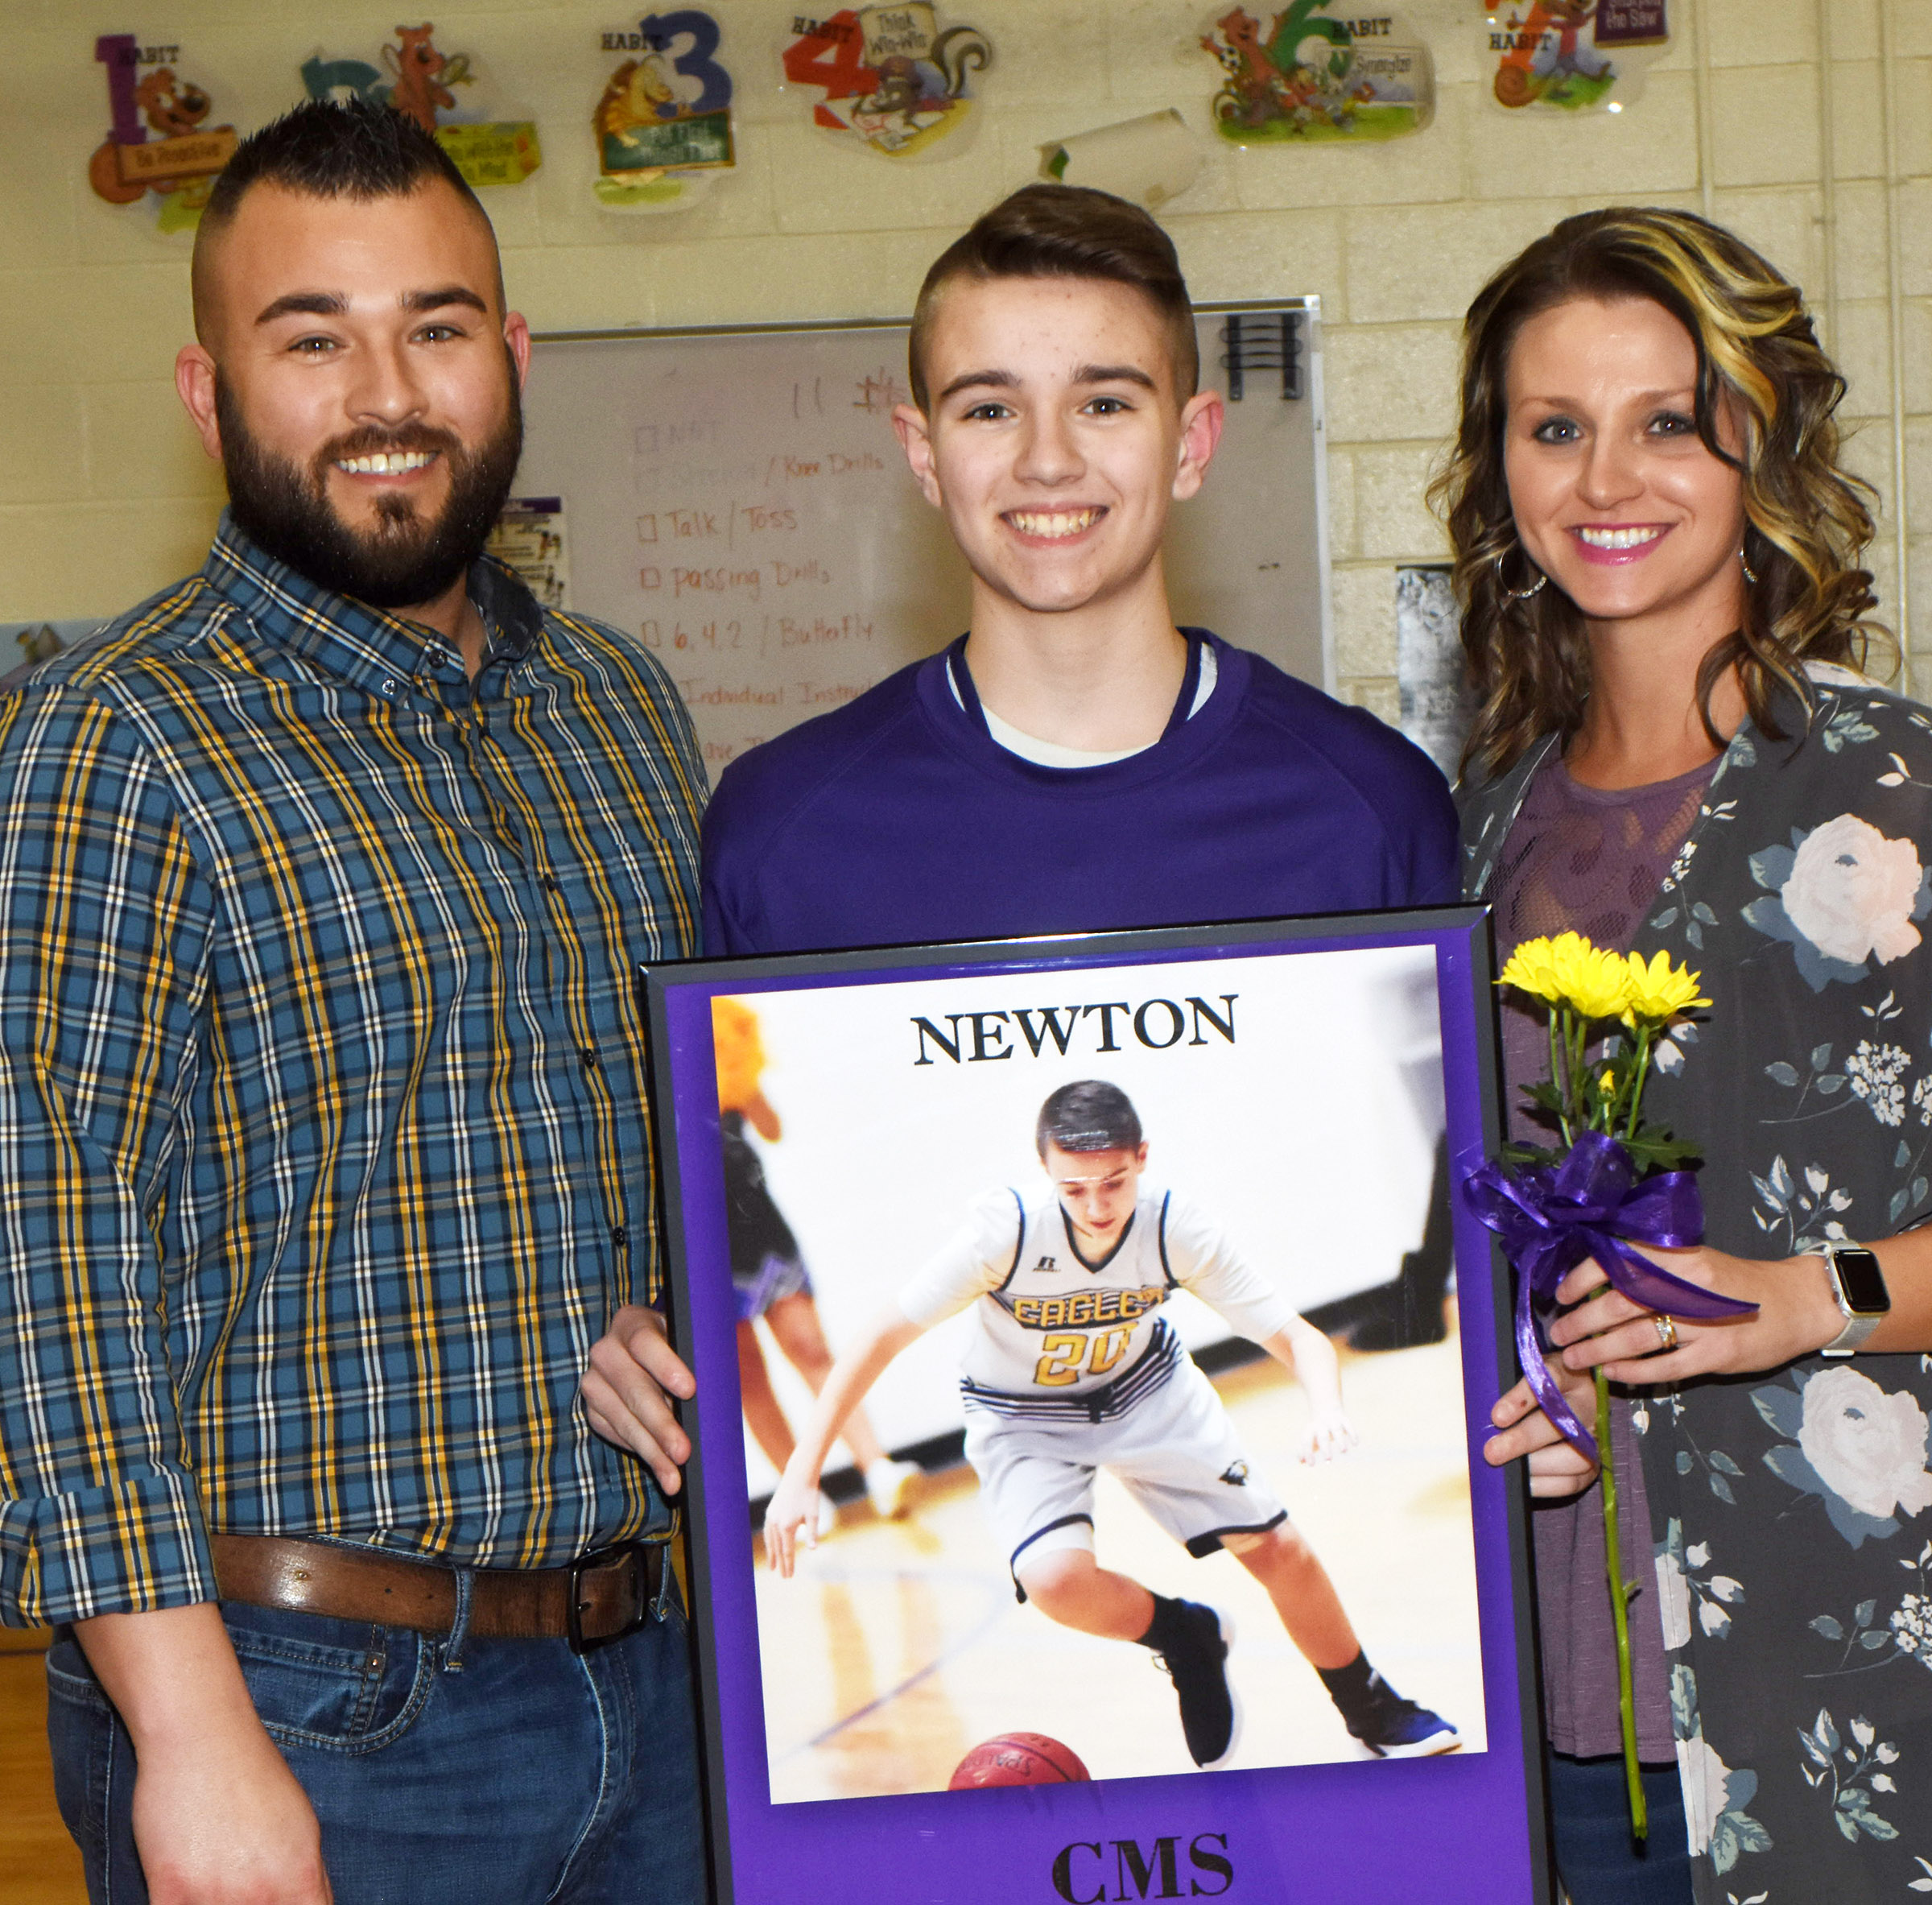 CMS boys' basketball eighth-grader player Bryce Newton is honored.